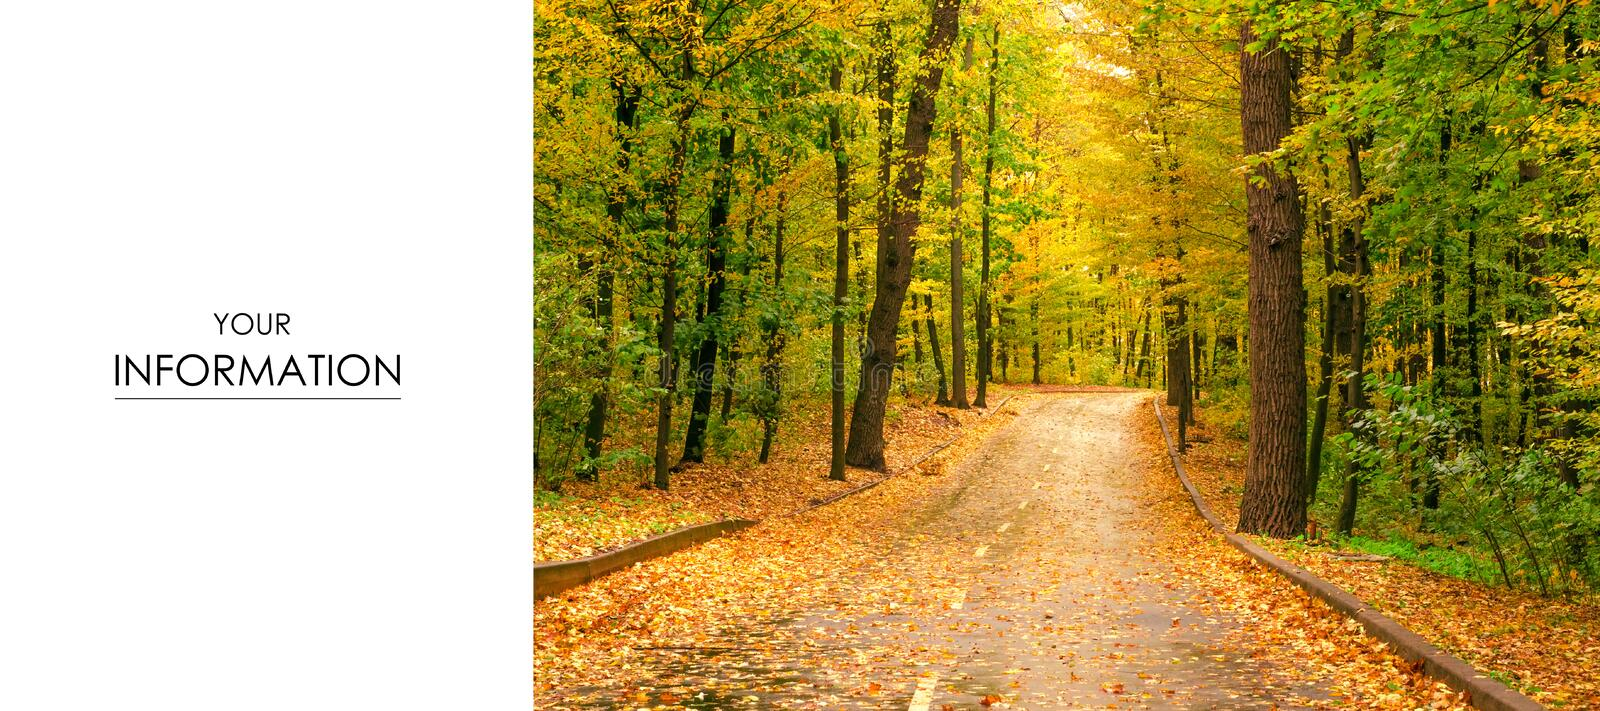 Autumn trees road landscape view of yellow red orange leaves stock image